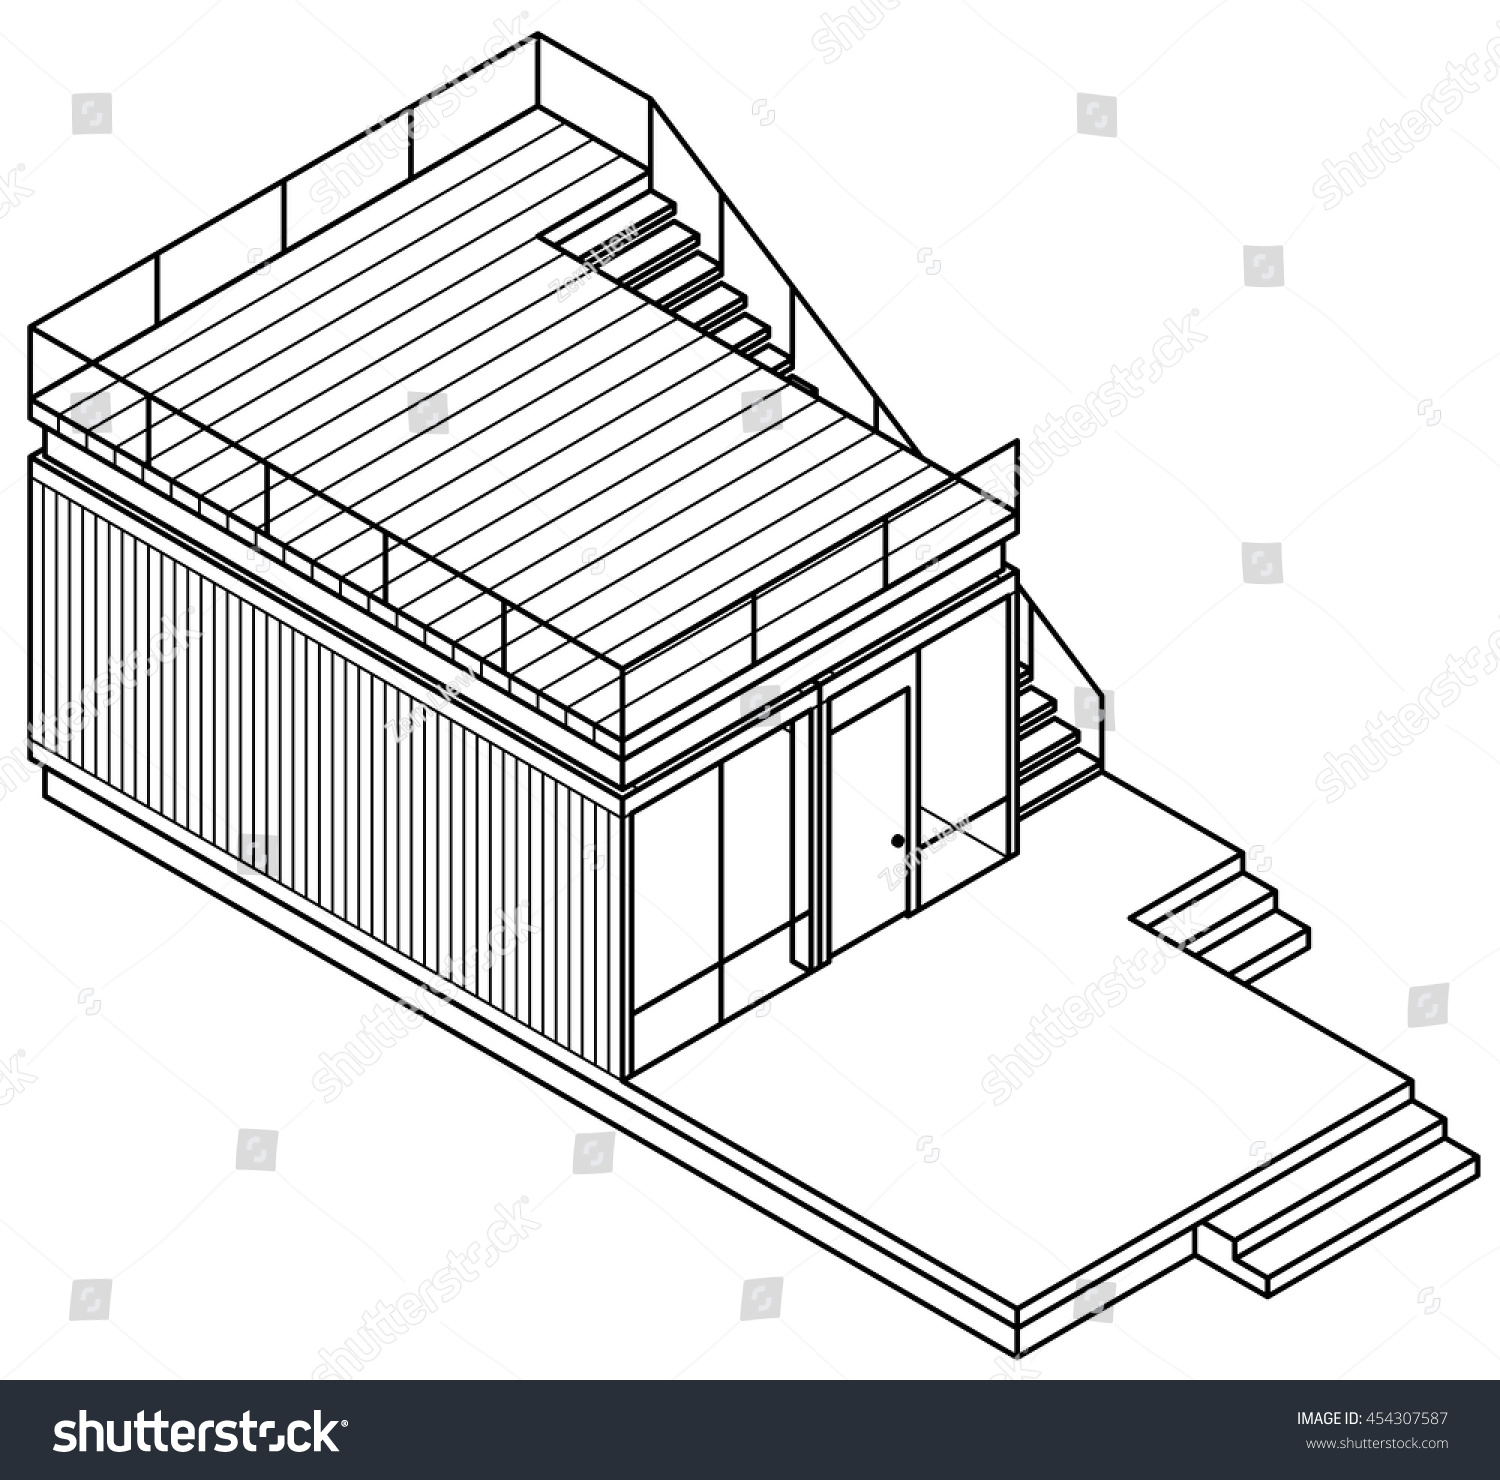 Lineart drawing housebuilding made out shipping stock vector 454307587 shutterstock - Shipping container home plans and drawings ...